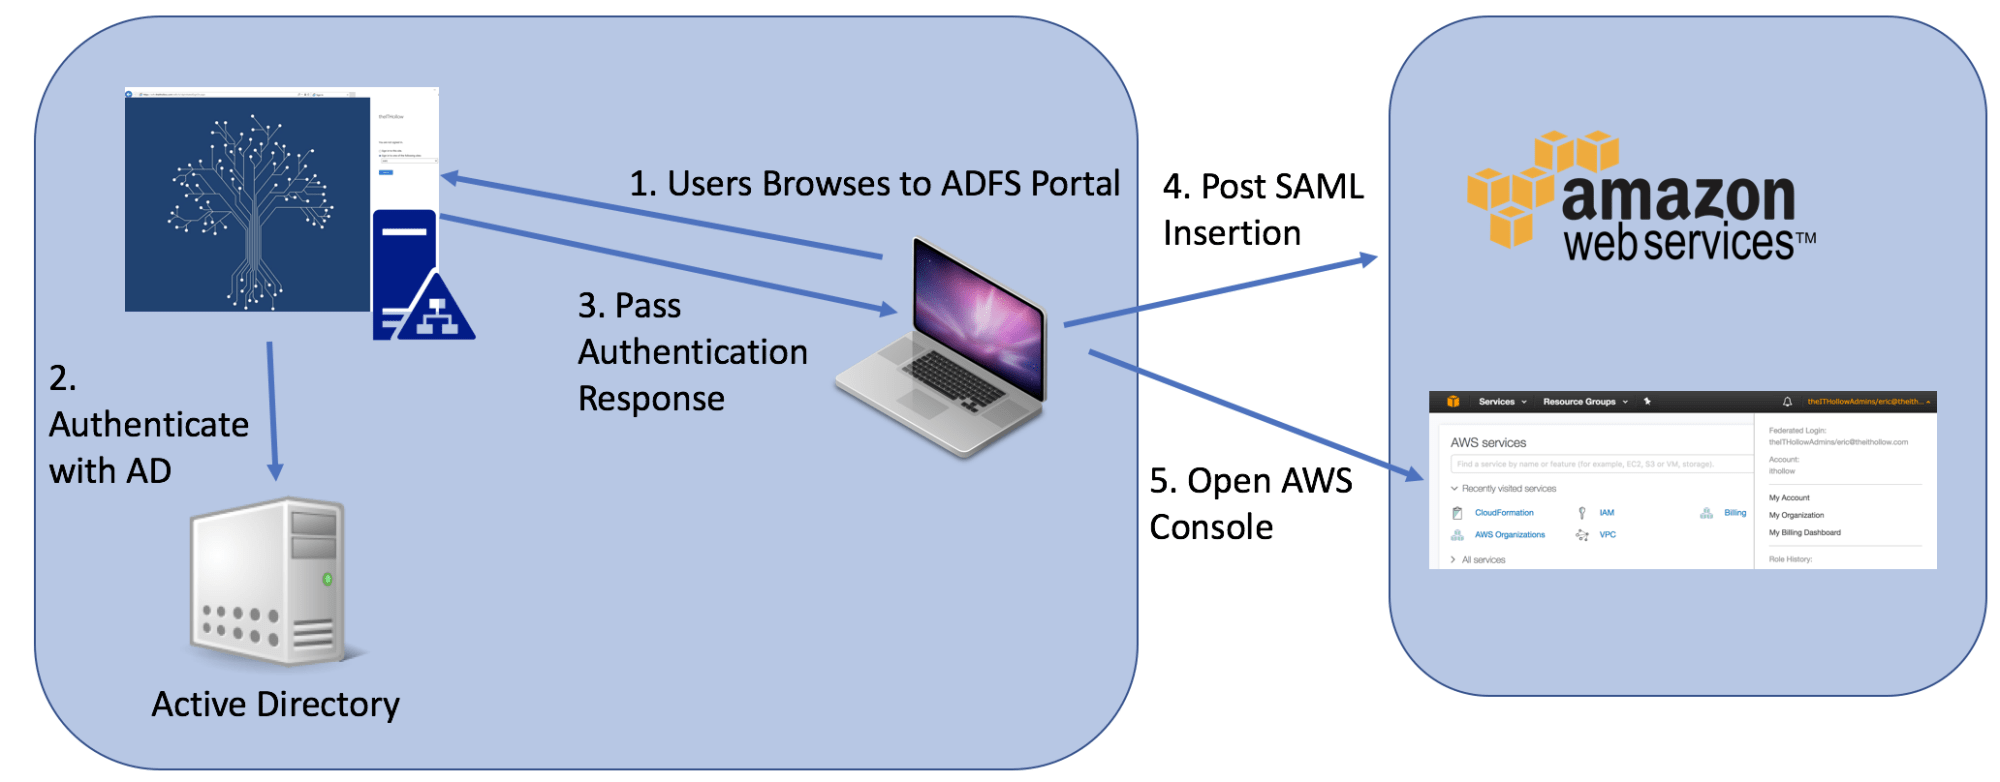 hight resolution of  aws portal and then the browser will be redirected to the aws console if authenticated correctly the diagram below shows how the process would work